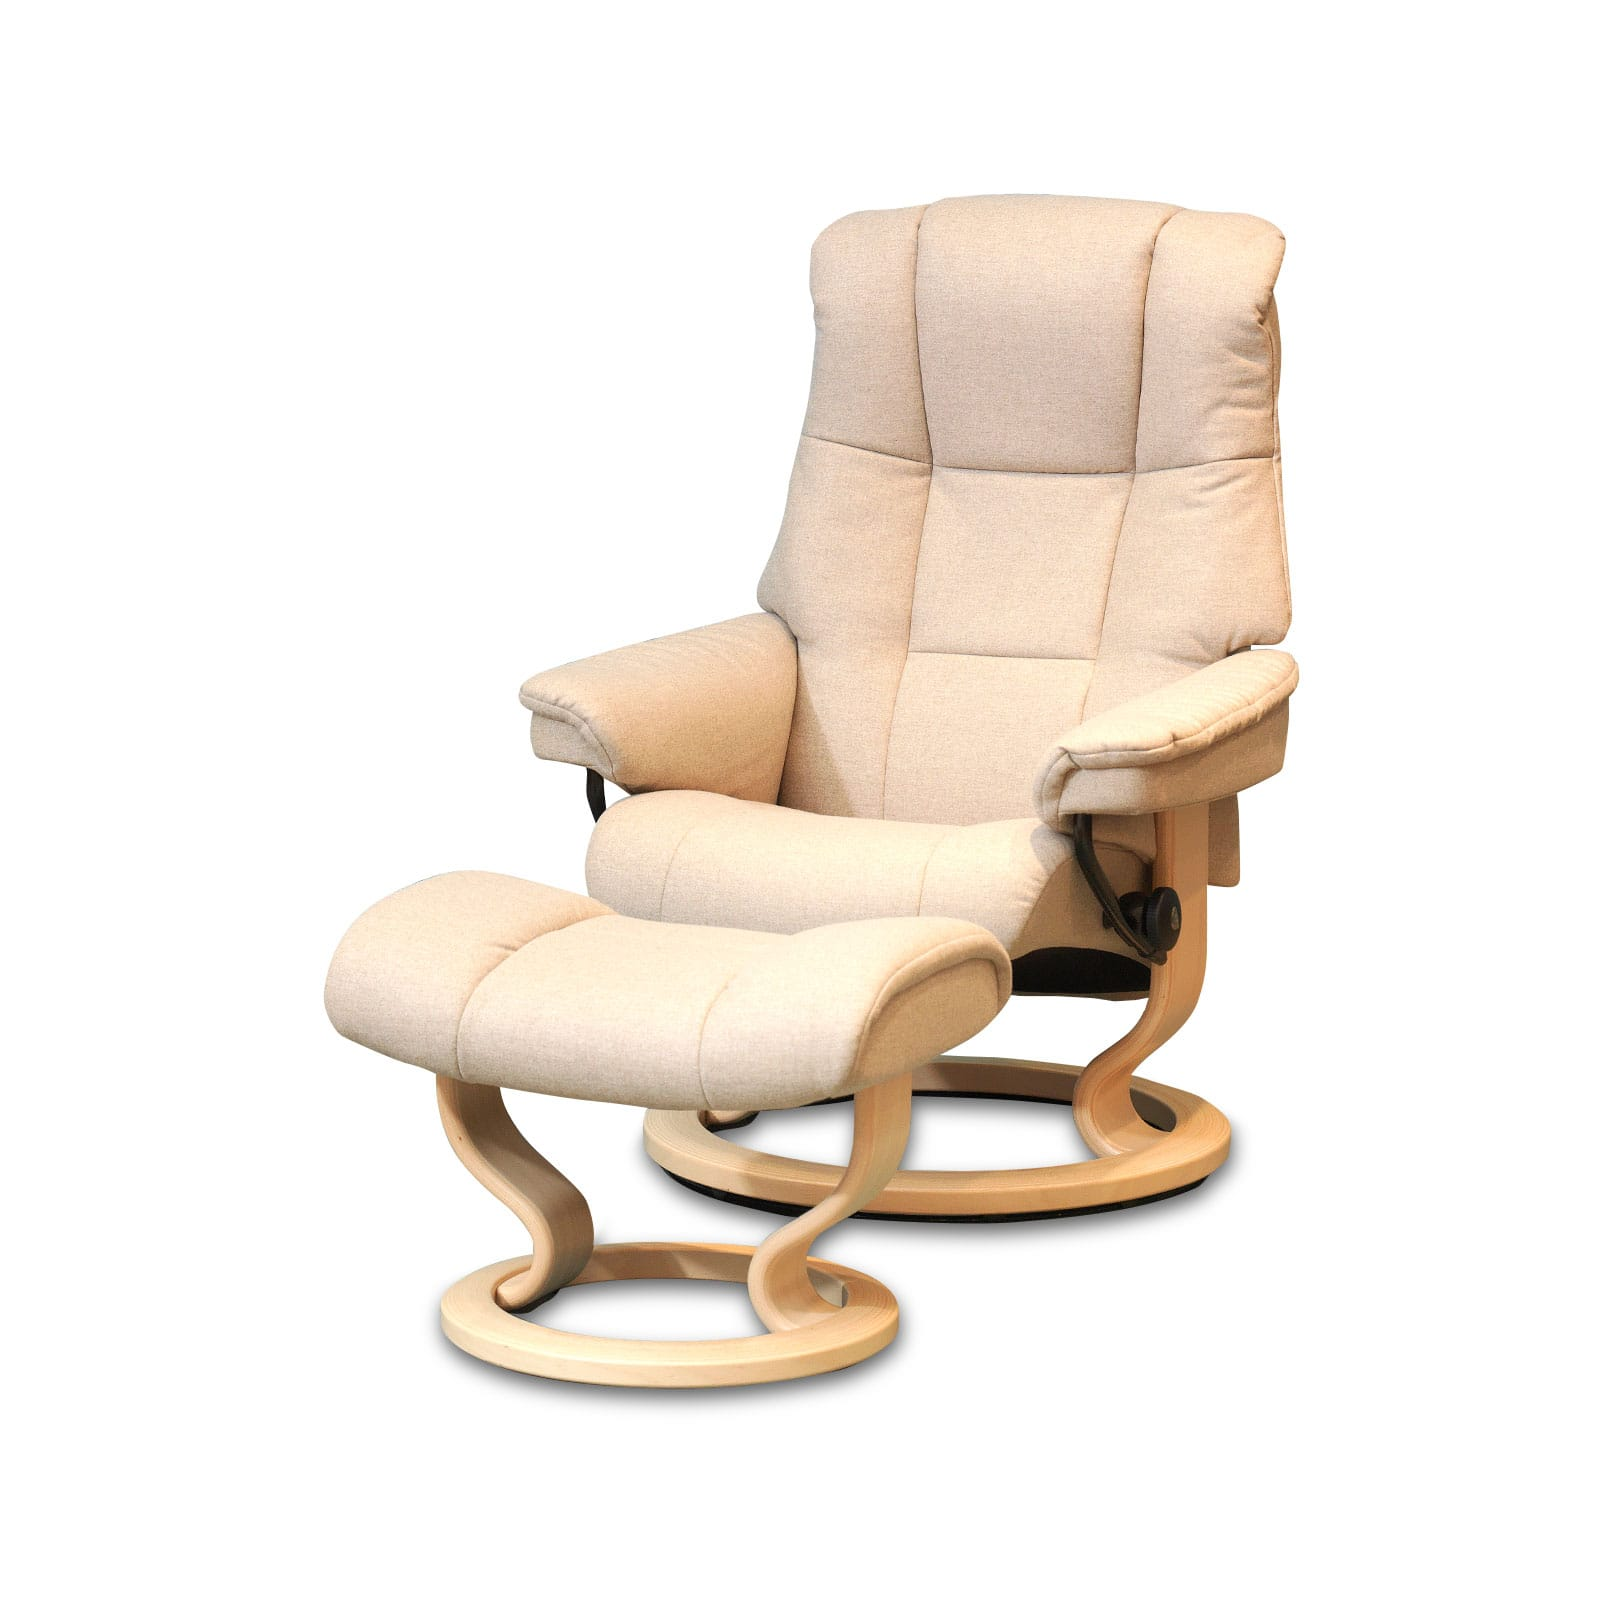 Stressless MAYFAIR Calido Light Beige Classic Natur Mit Hocker